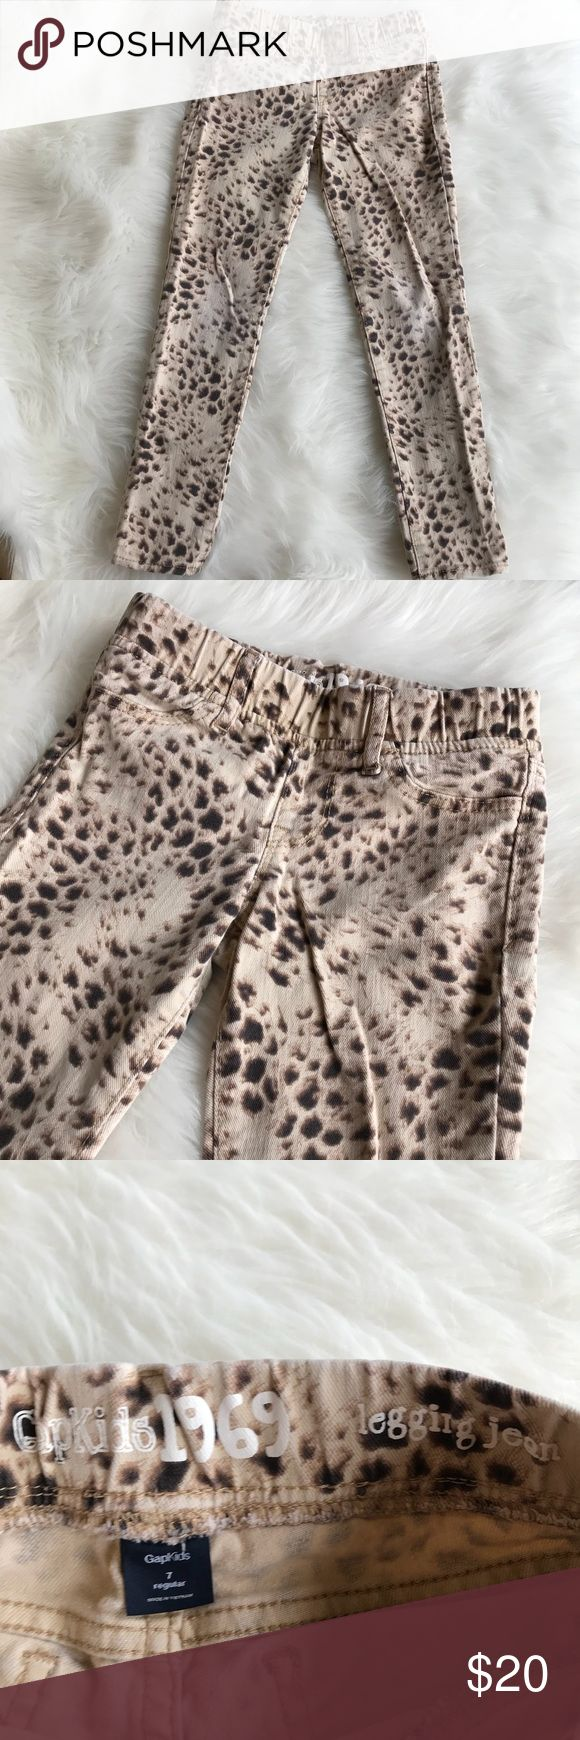 """Gap Kids Girls Animal Print Legging Jeans Gap Kids Girls Animal Print Legging Jeans! Love this neutral jean with a pull on style & elastic waist! Size 7. 11.5"""" across the waist & 27"""" long. Cotton & Spandex blend. LW3042111517 GAP Bottoms Jeans"""